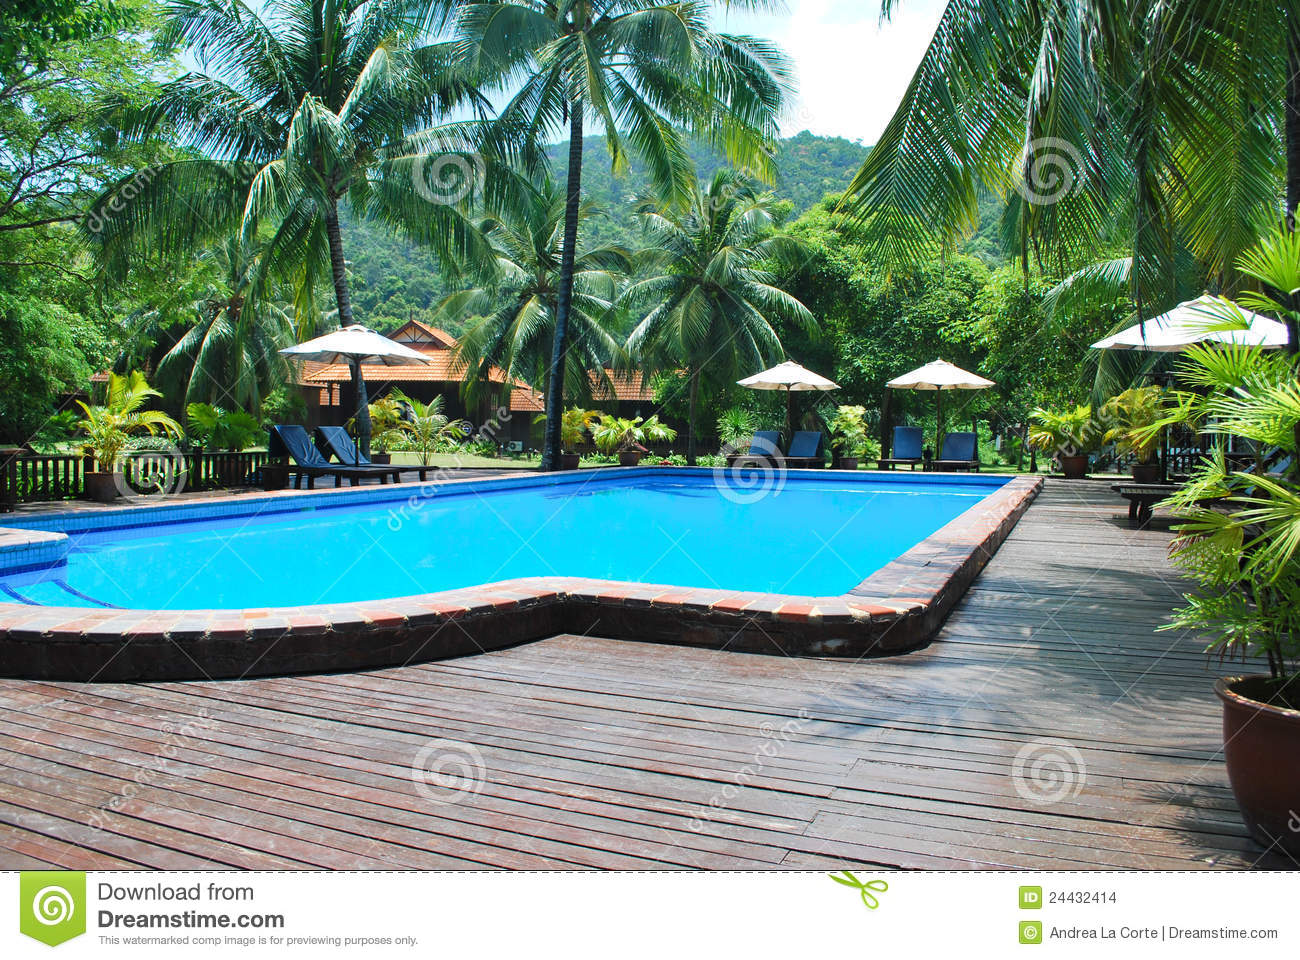 Piscine dans la ressource images stock image 24432414 for Piscine thermale